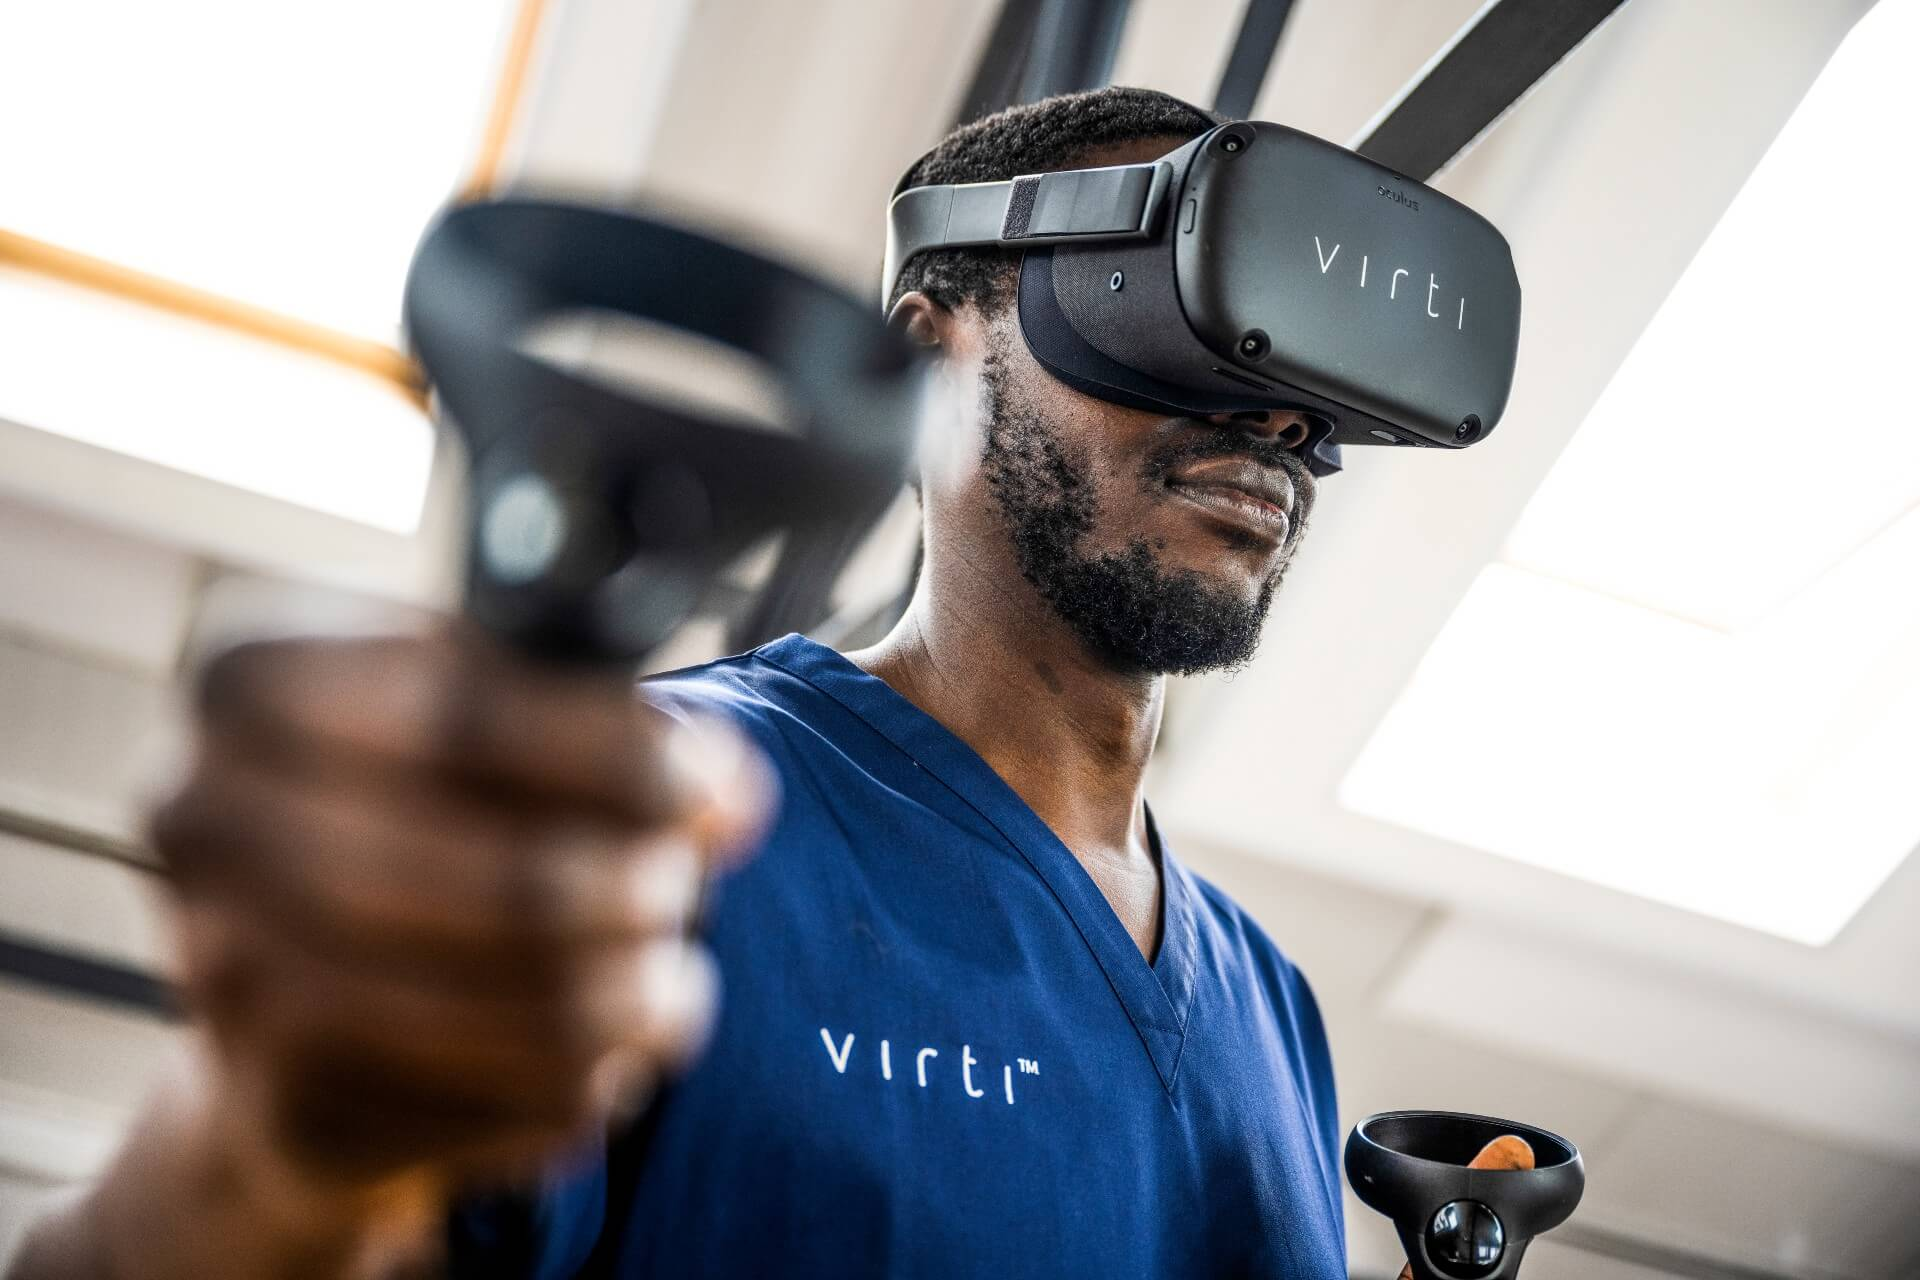 Virti secures £7.2m Series A investment to optimise human performance for the global workforce